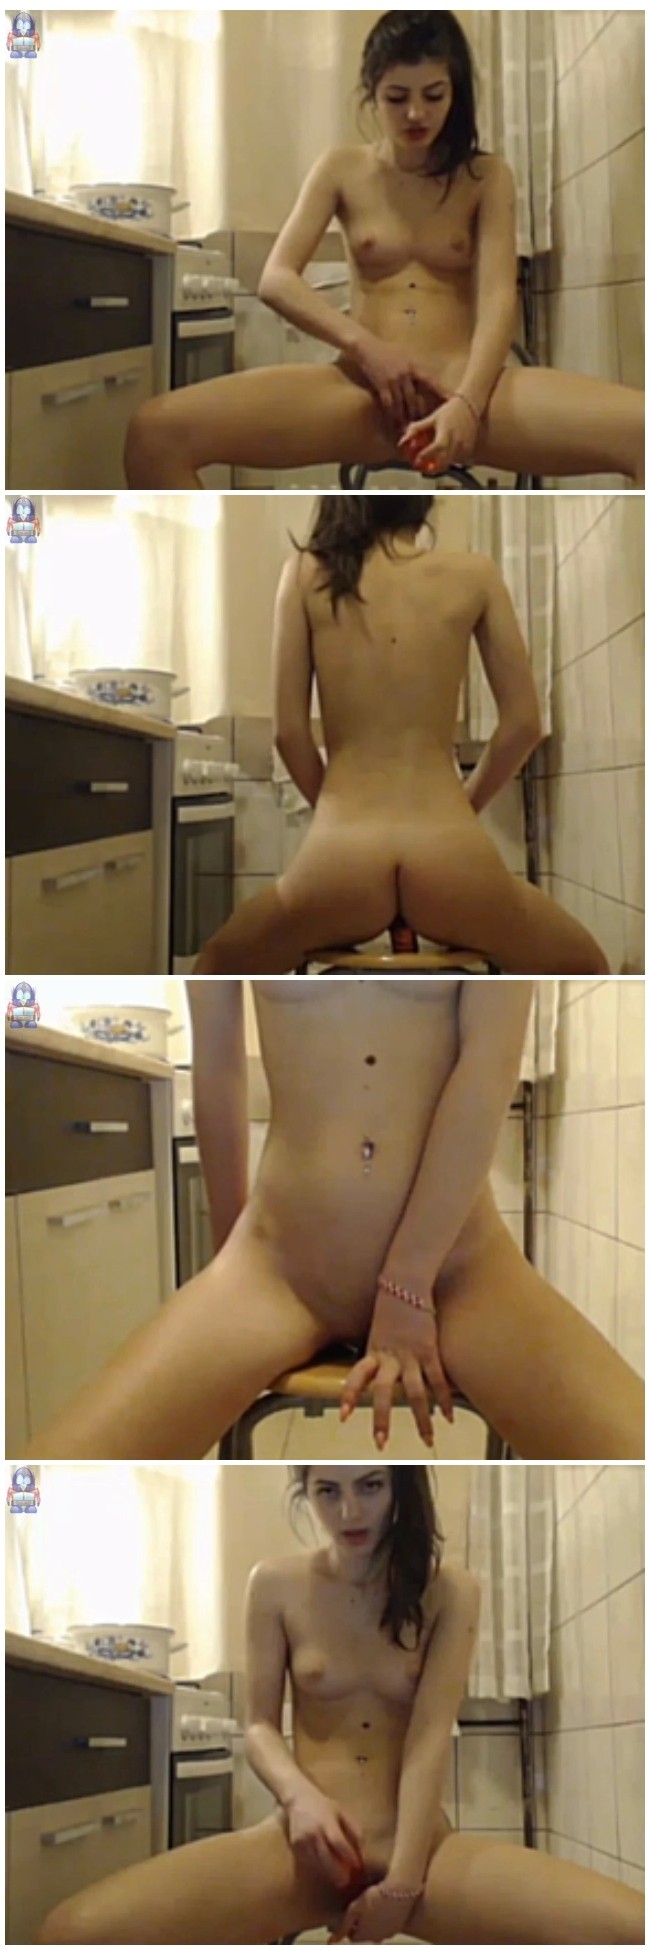 Webcam Girls Get Naked